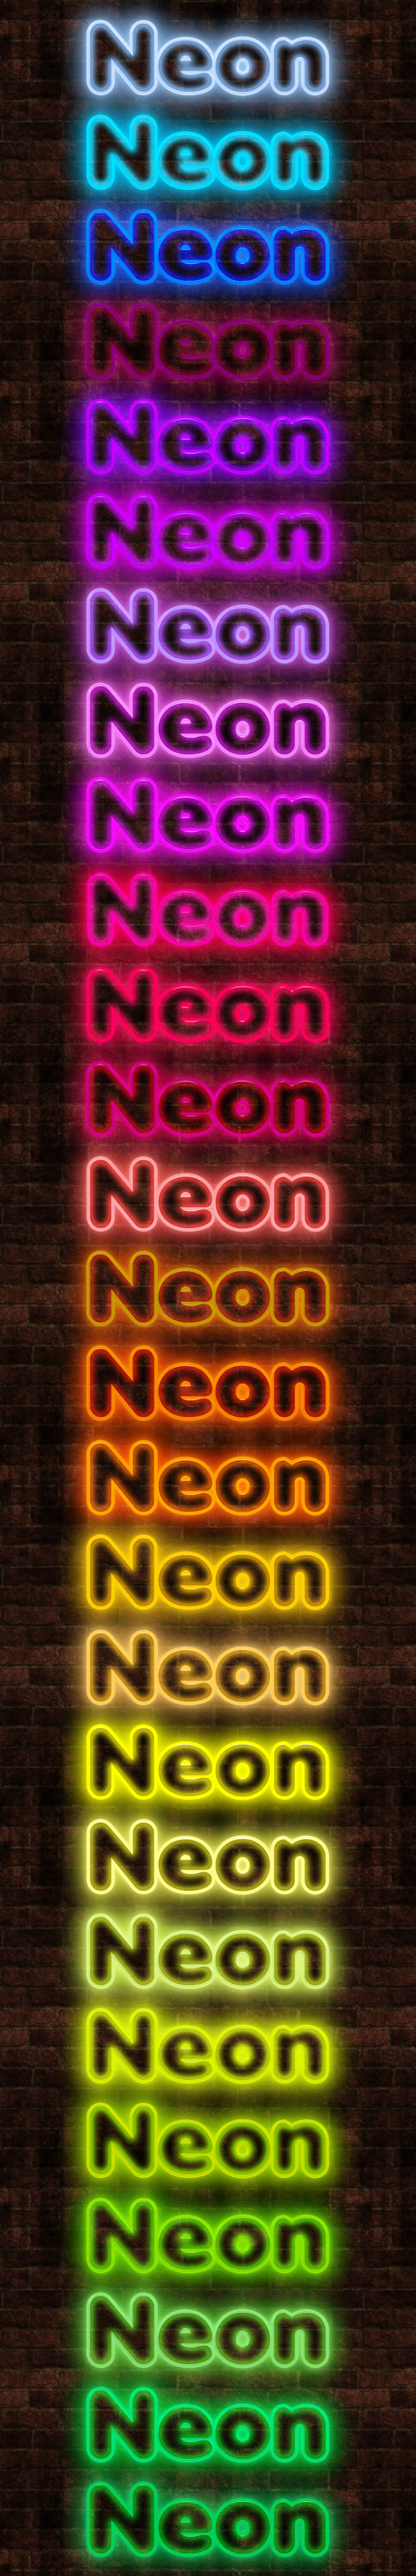 27 Neon Styles - Text Effects Styles